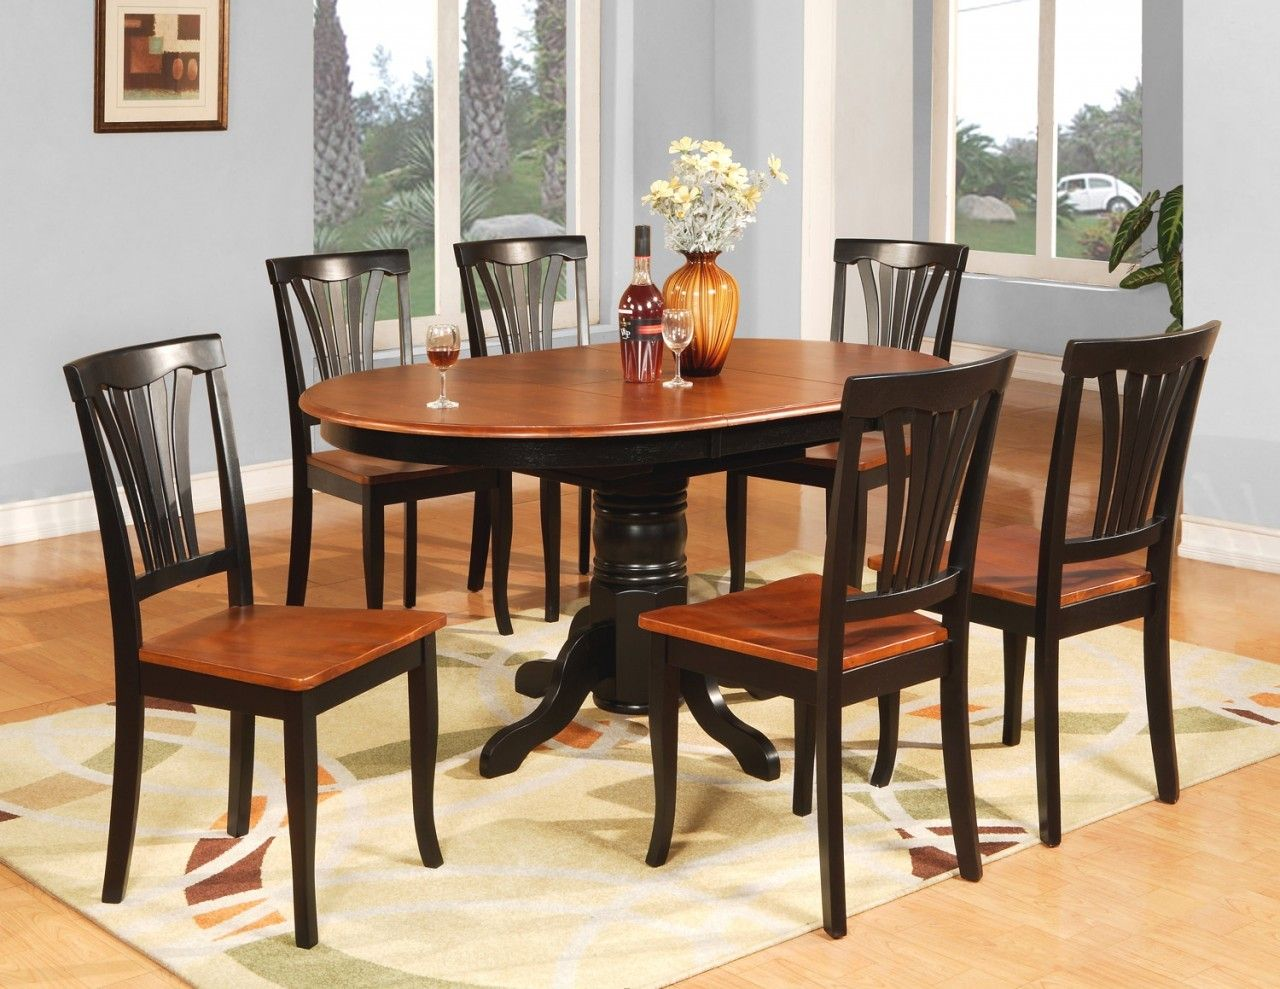 2 tone oval dining tables and chairs avon 5pc oval for Dining room tables 6 seater